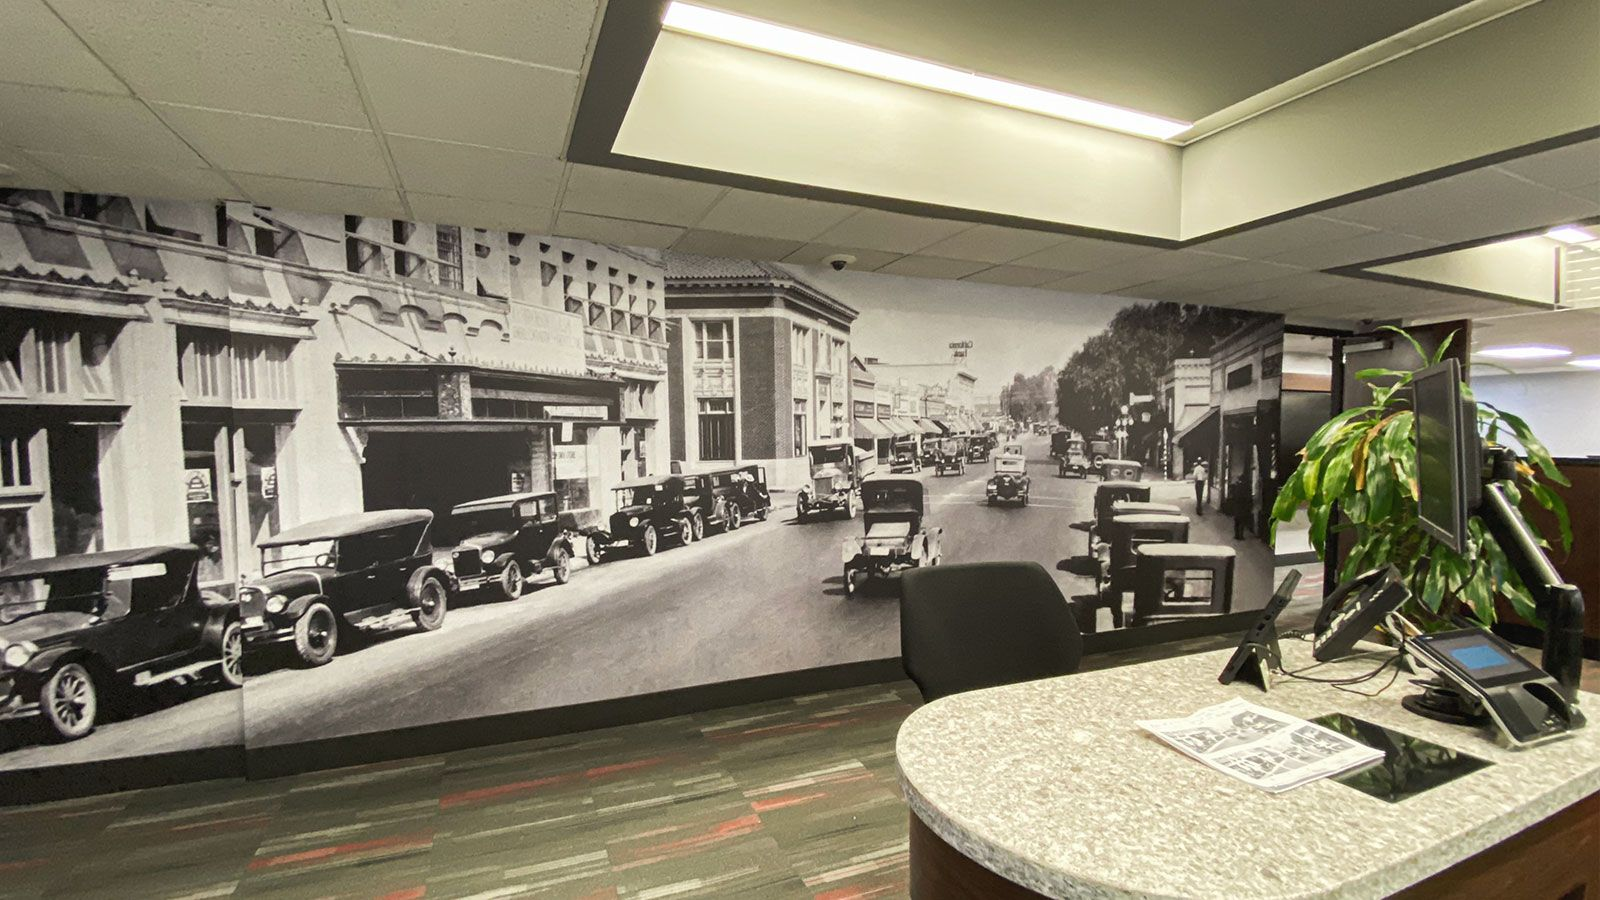 custom interior wall sign with retro images of a city street made of opaque vinyl for office indoor branding and decorating